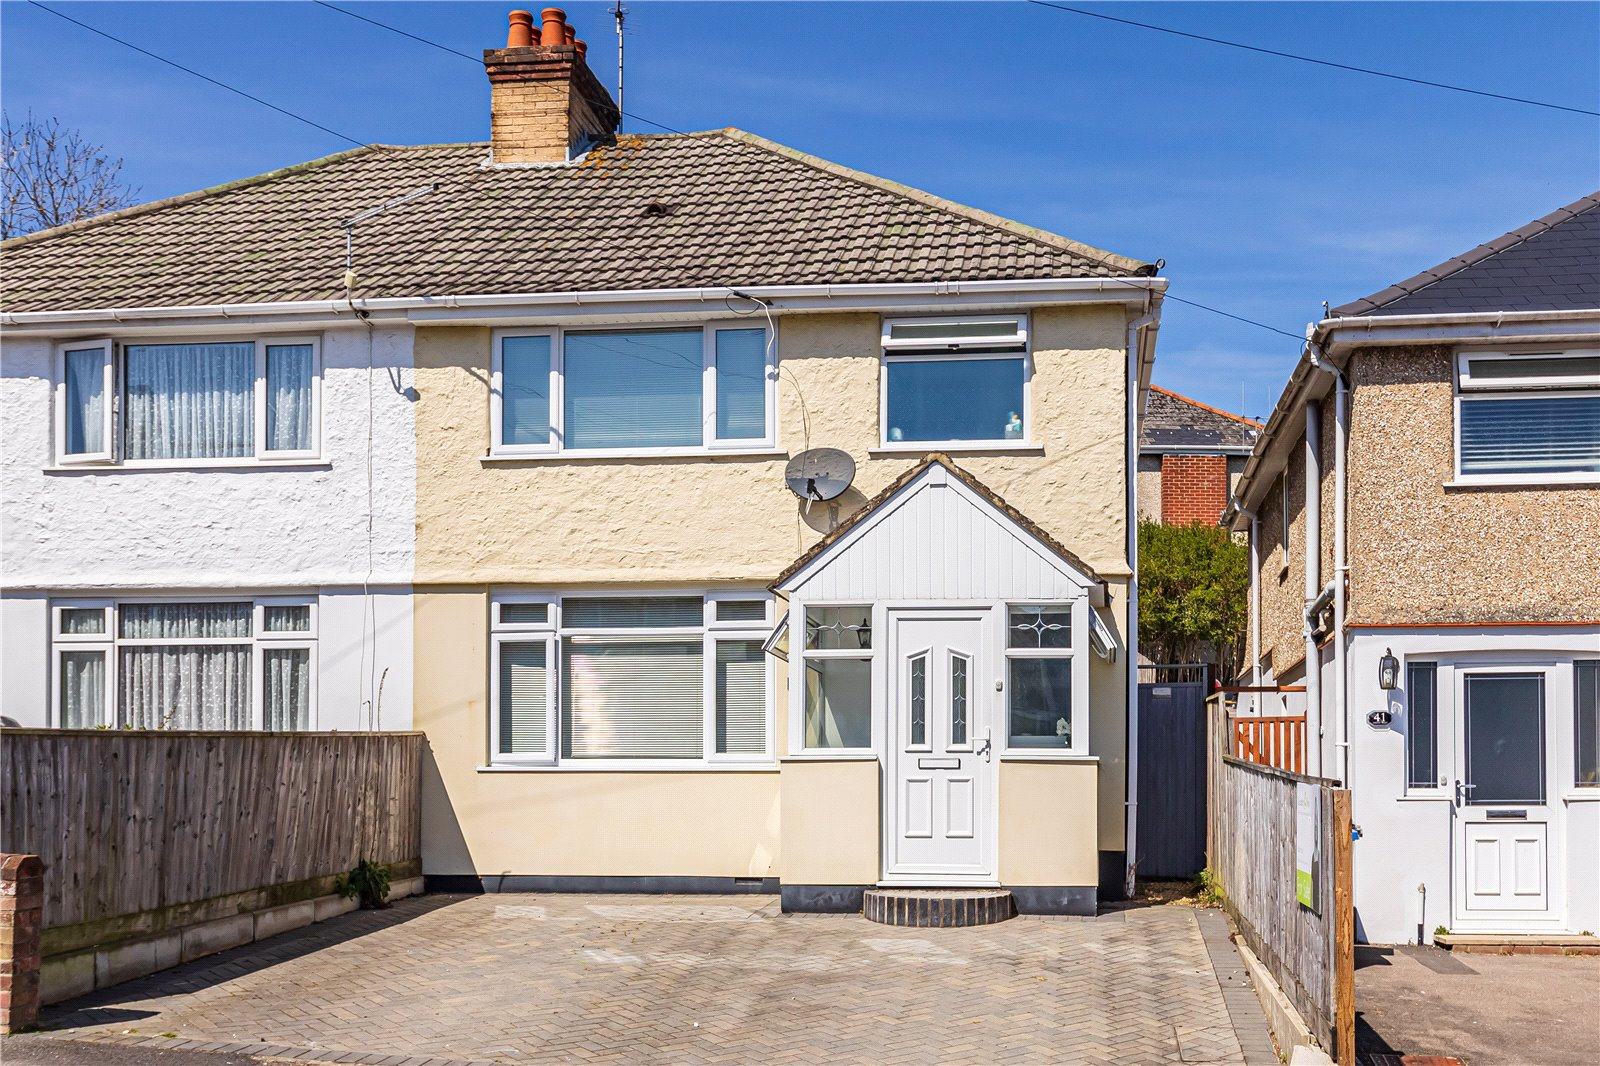 3 bed house for sale in Library Road, Parkstone, BH12